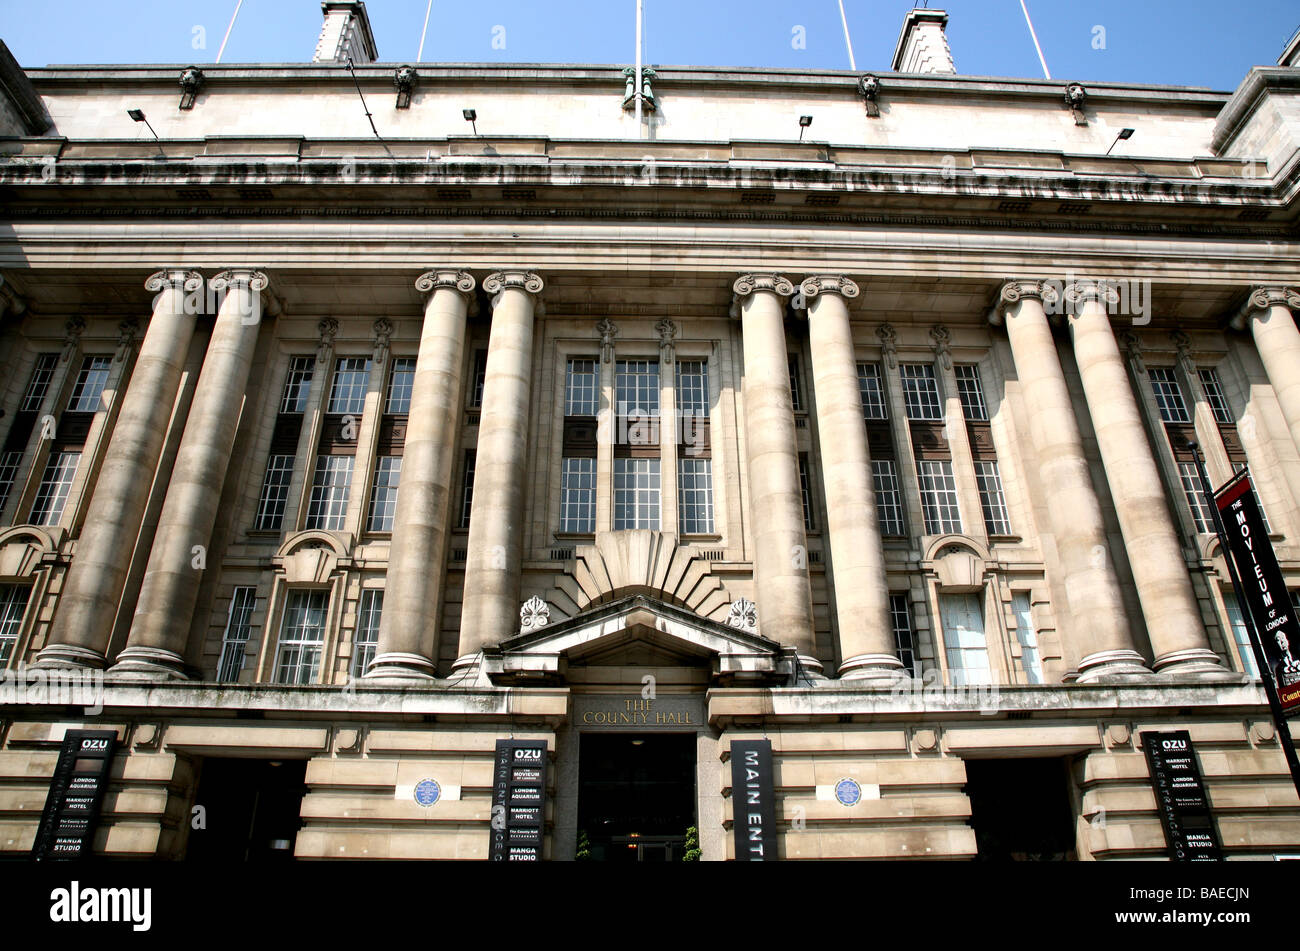 Main entrance to County Hall London Stock Photo